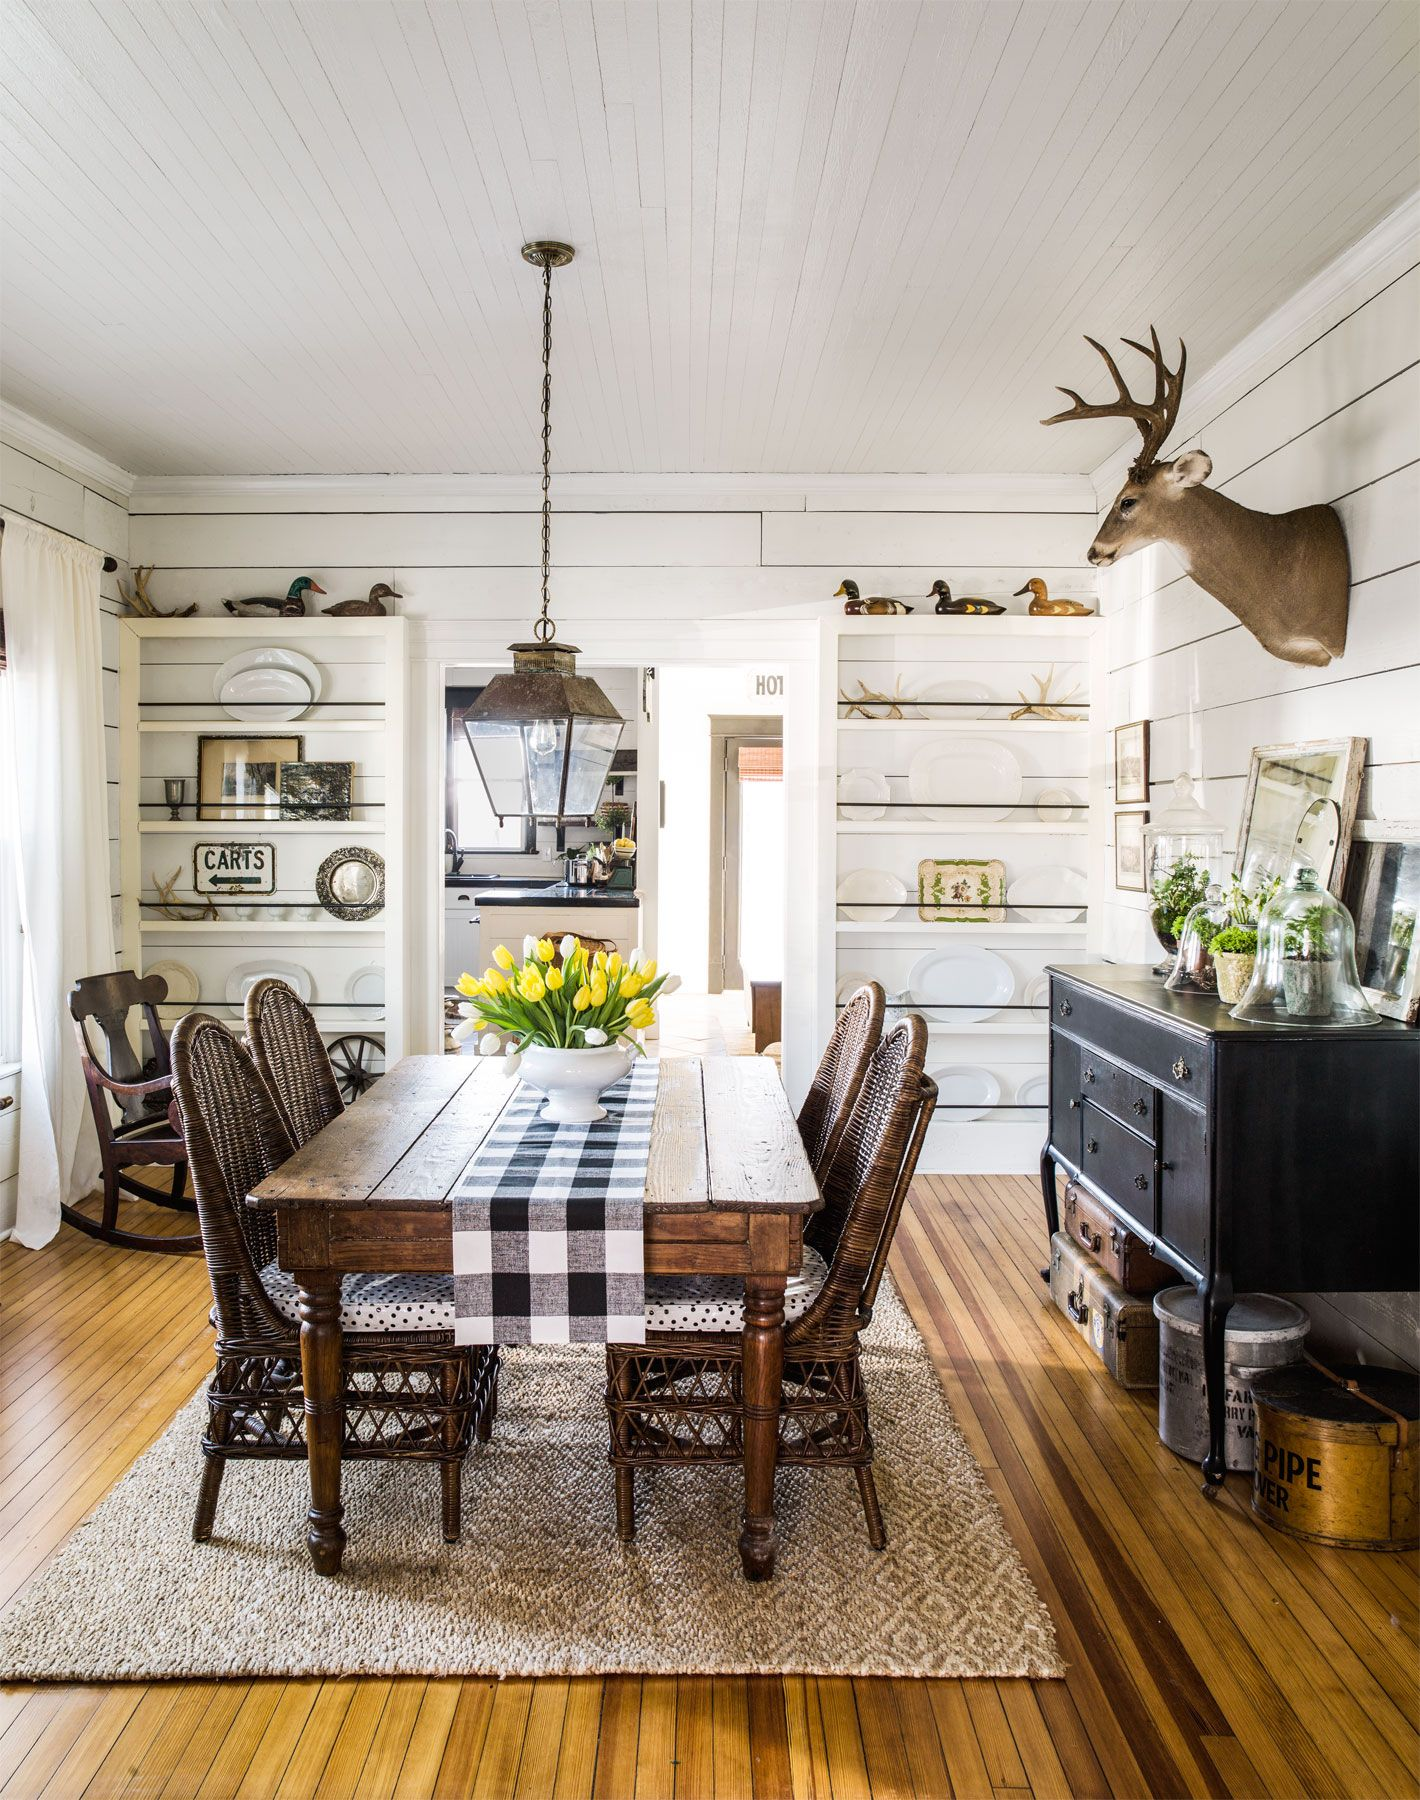 18 Vintage Decorating Ideas From a 1934 Farmhouse